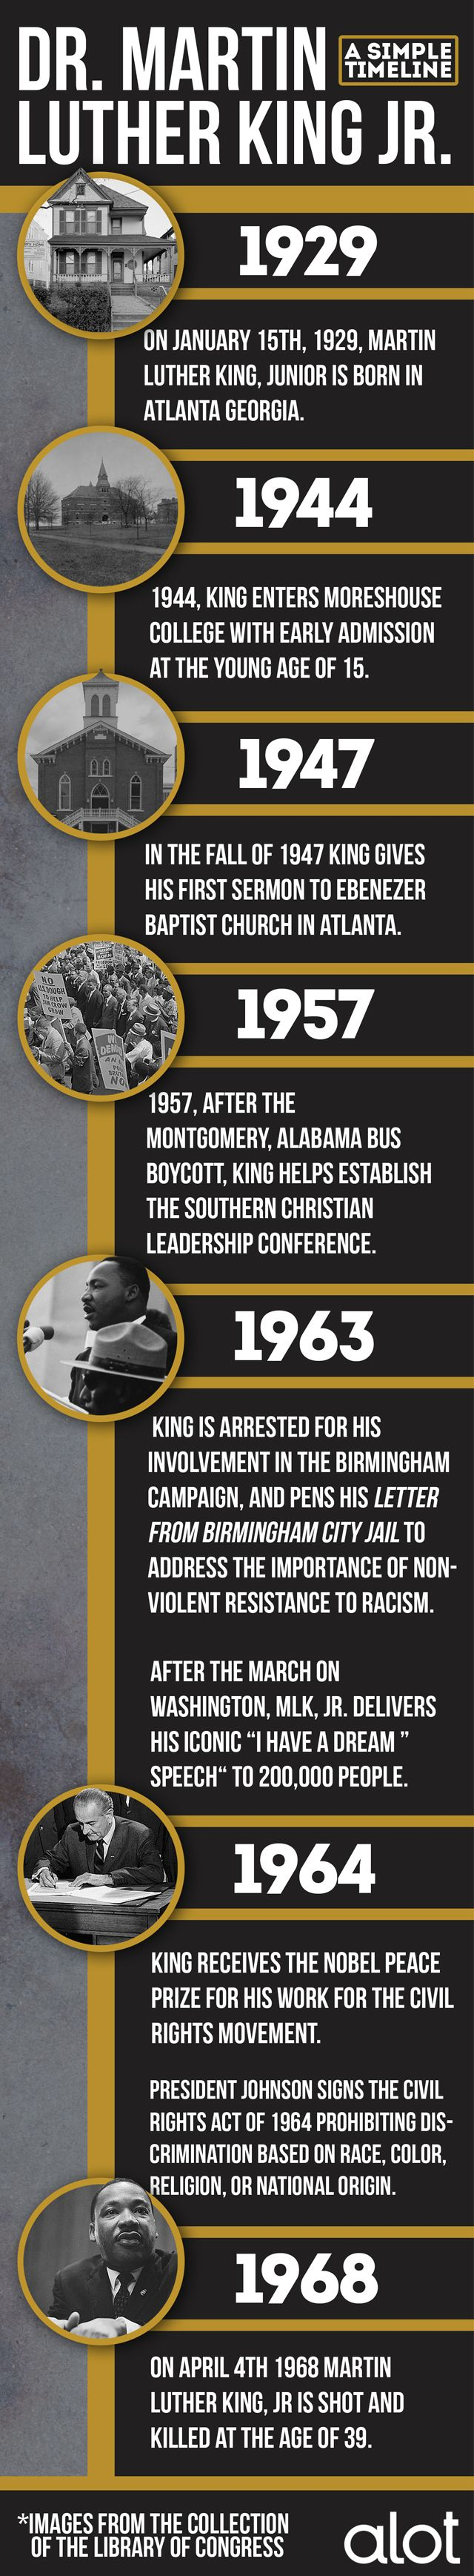 Martin Luther King, Junior: A Timeline